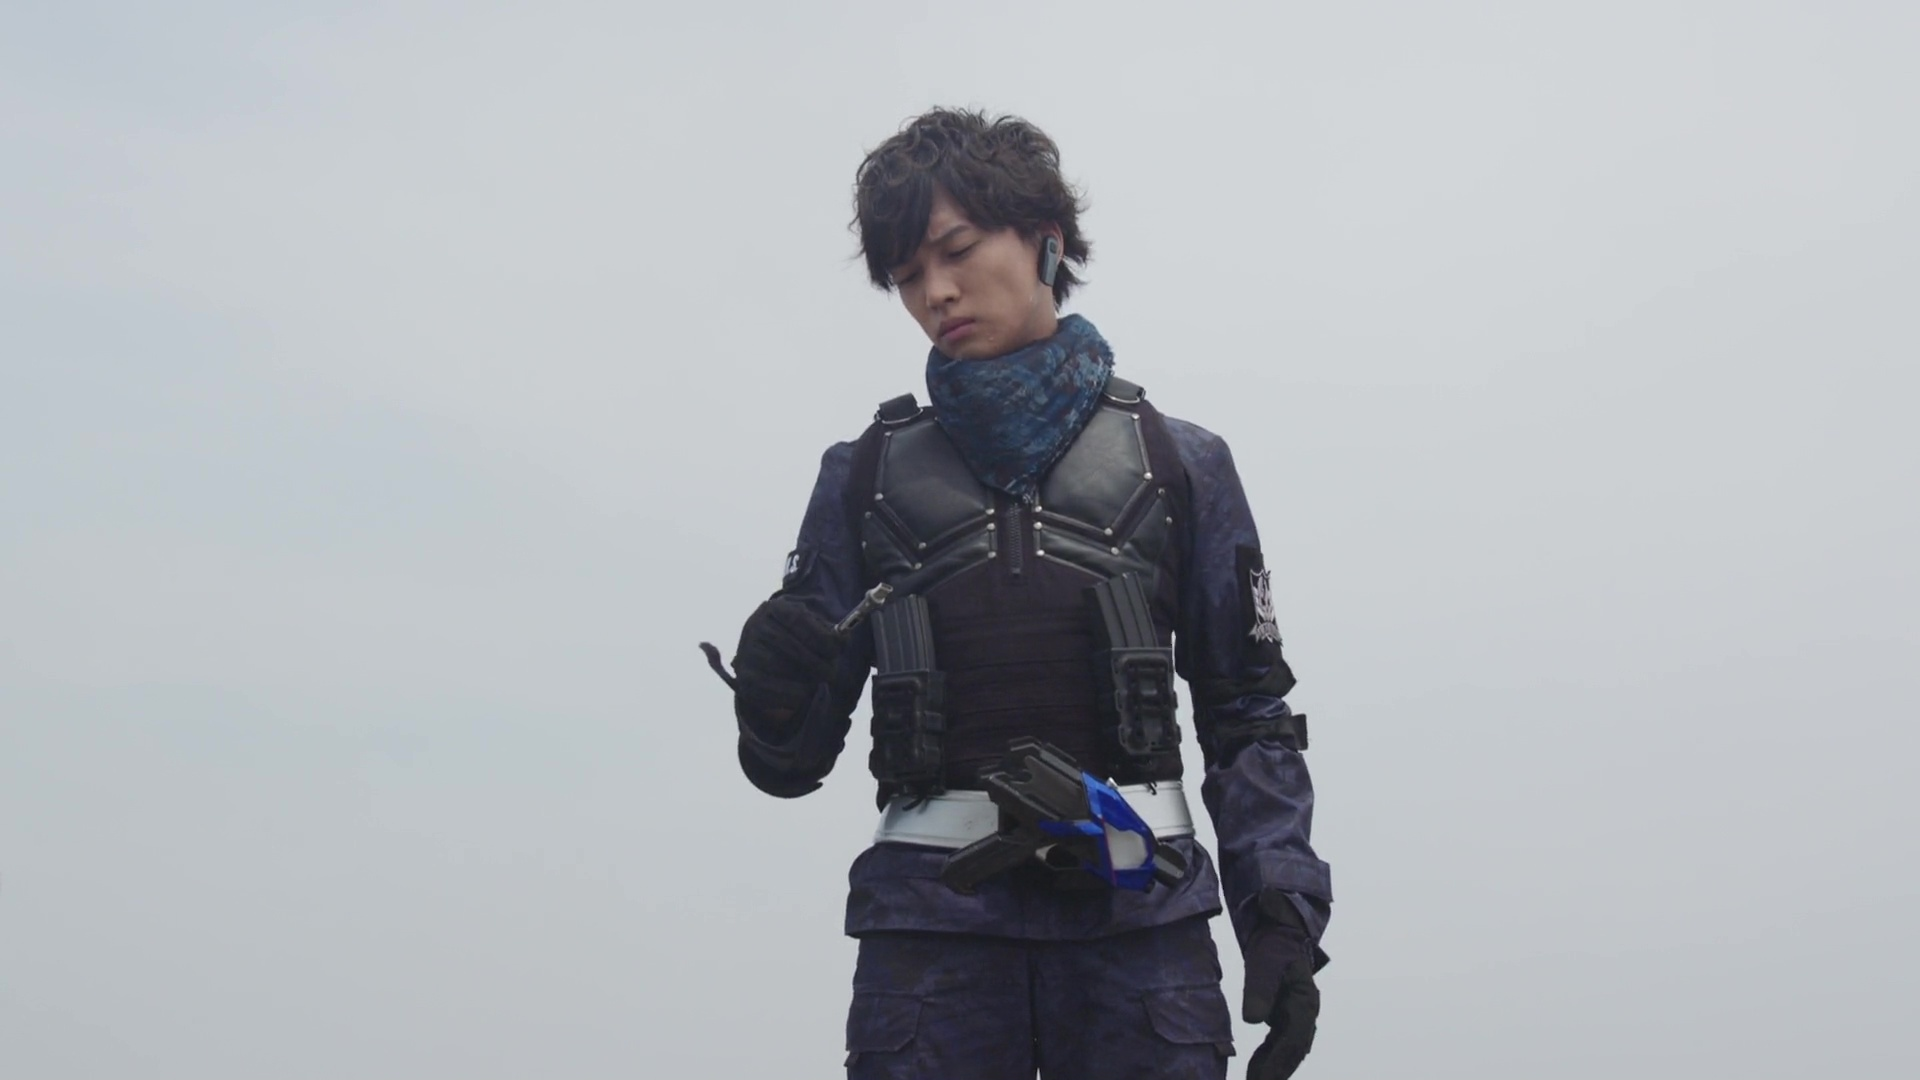 Kamen Rider Zero One Project Thouser Recap